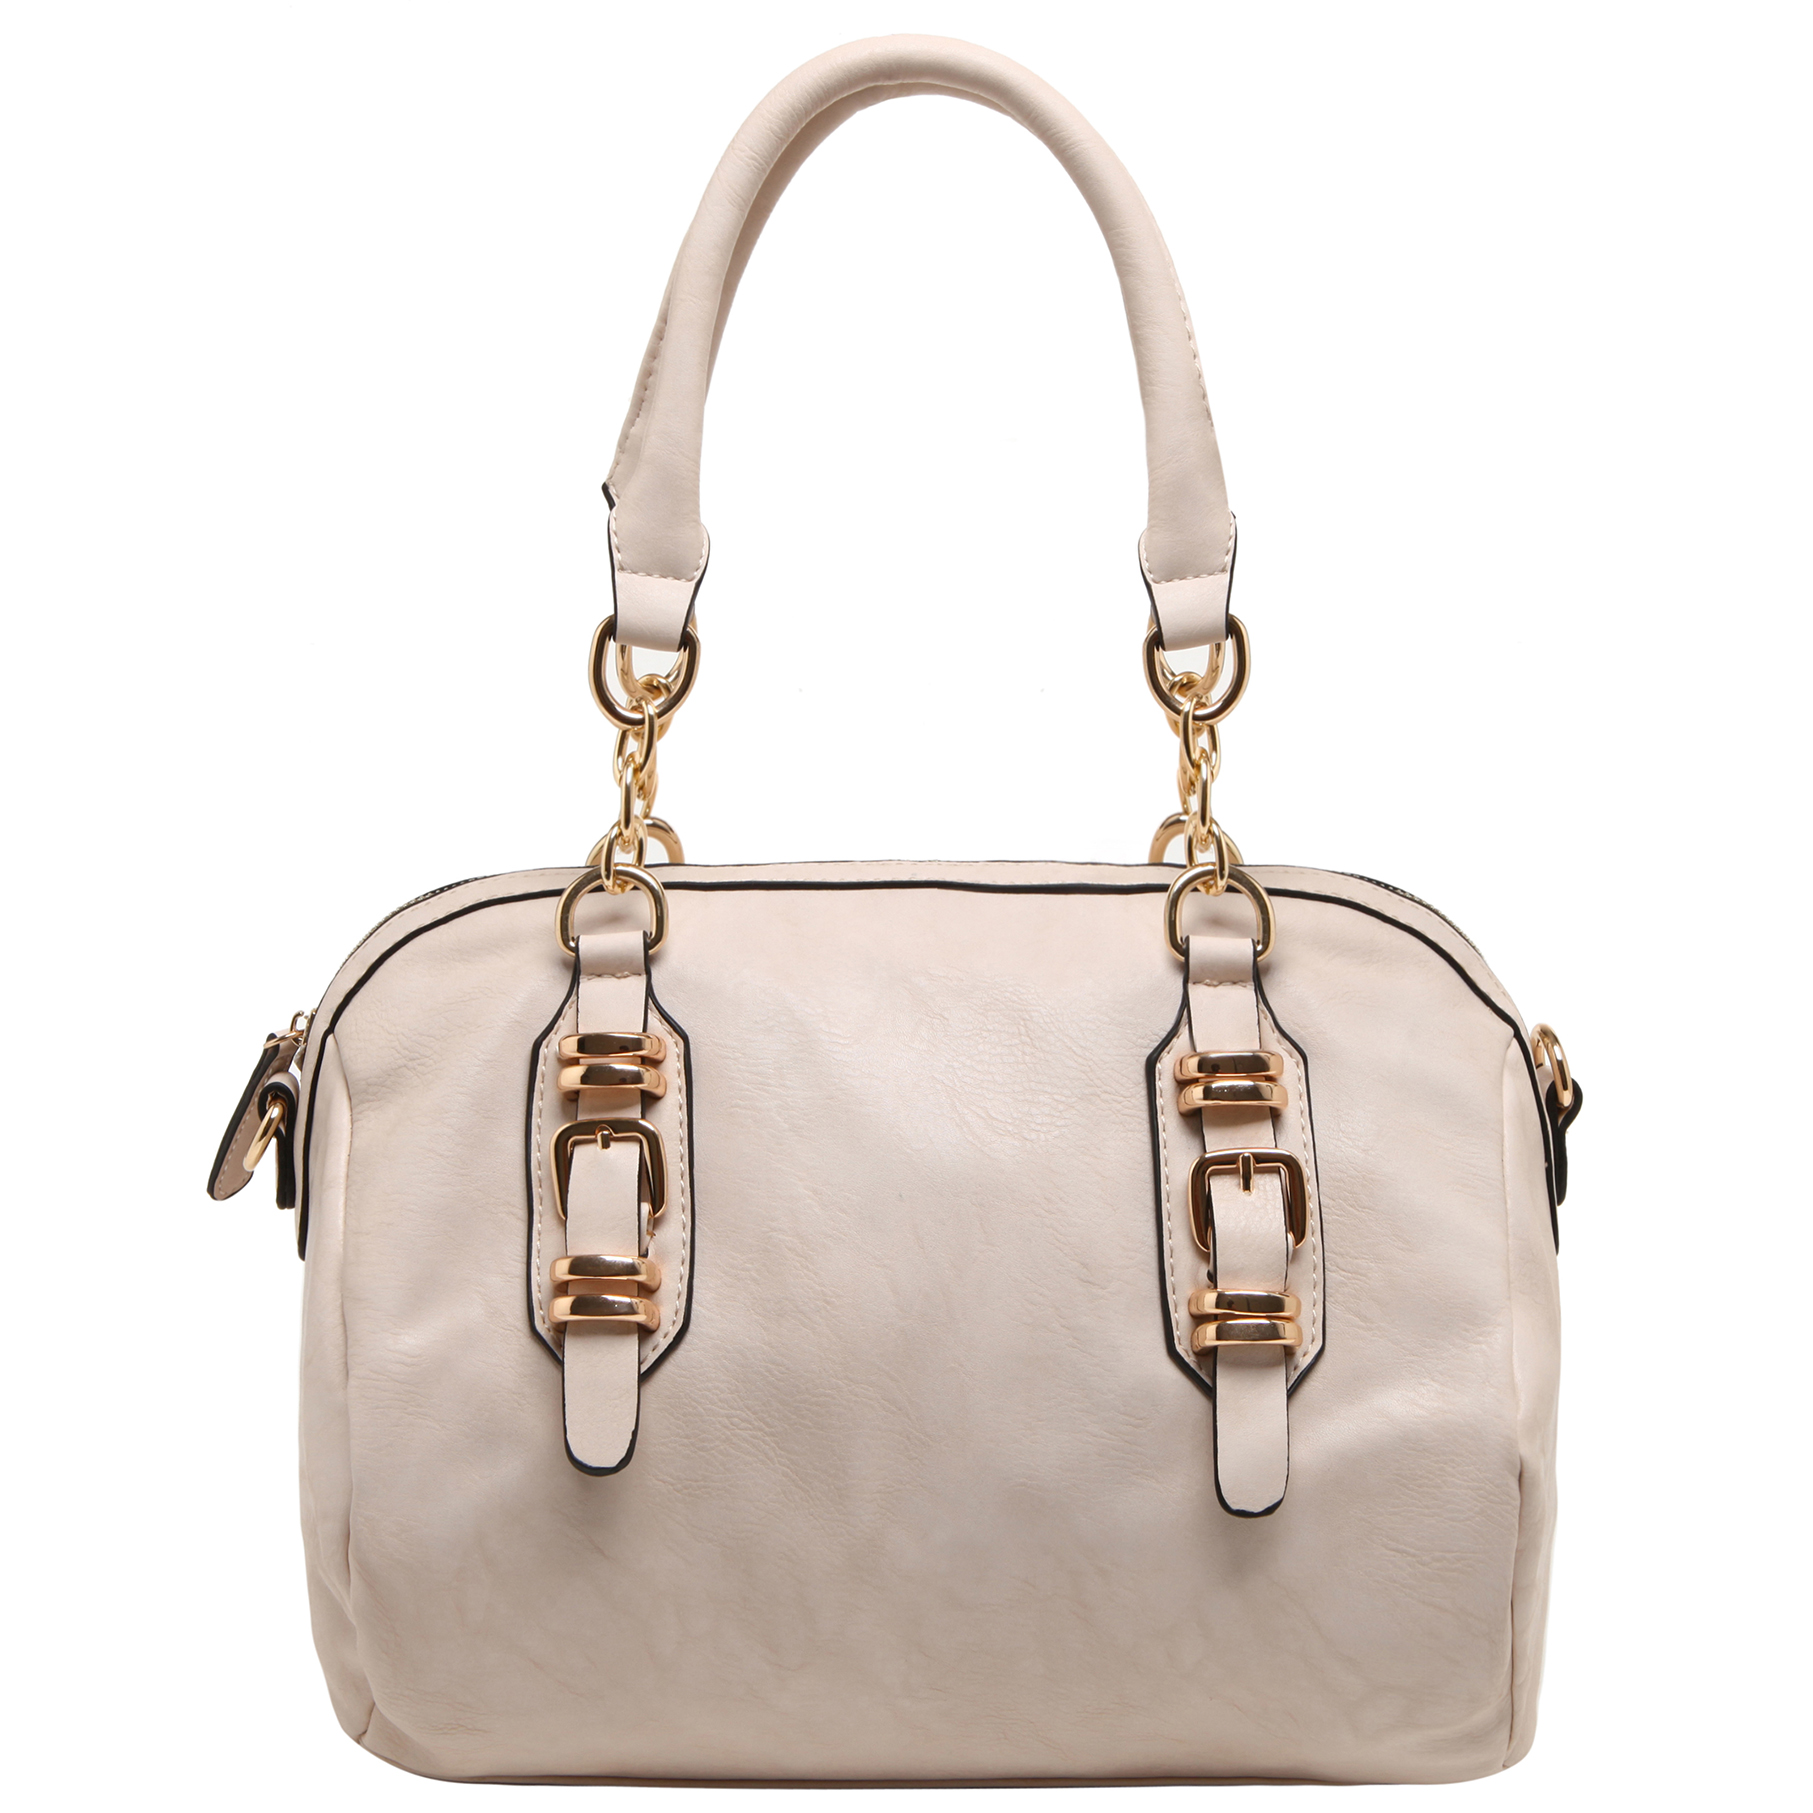 SONIA Beige Barrel Top Handle Tote handbag front image